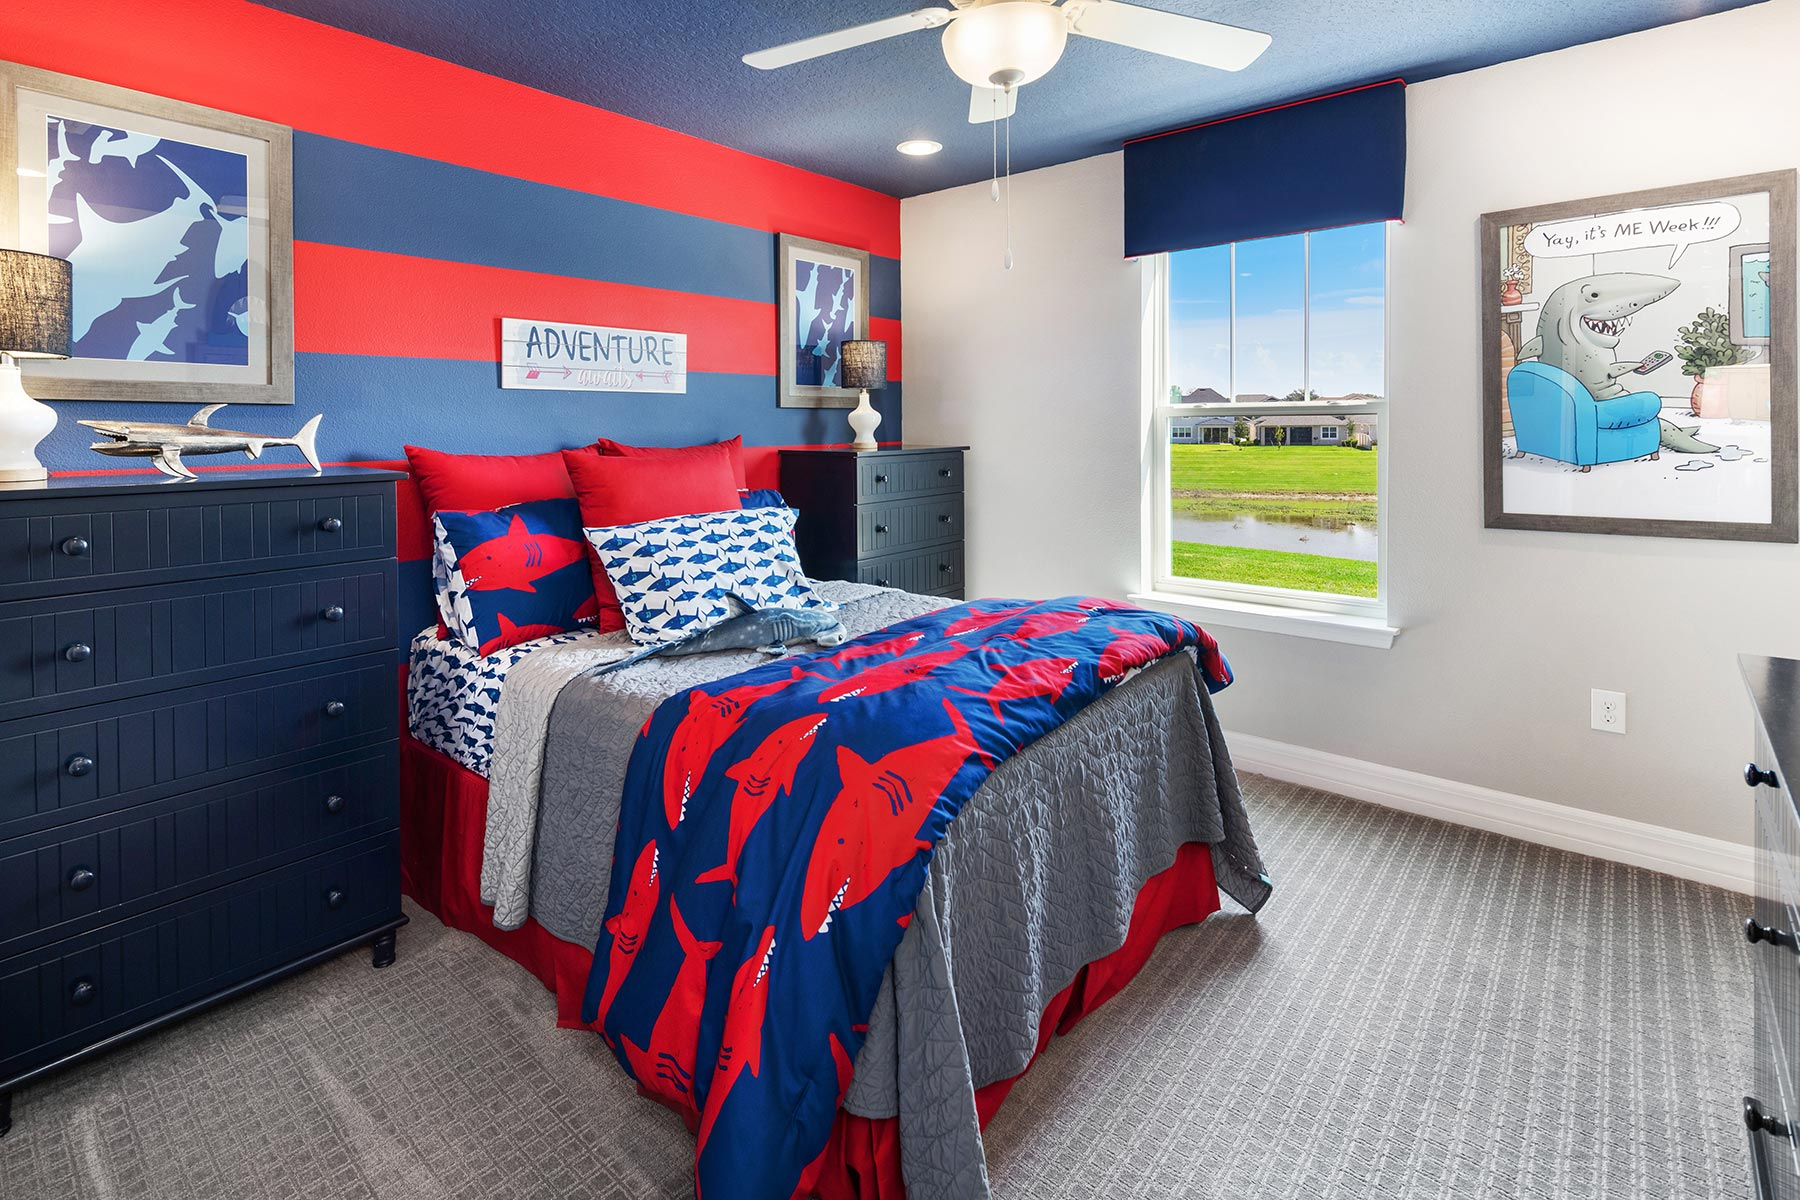 Kensington Plan Bedroom at Preserve at Crown Point in Ocoee Florida by Mattamy Homes